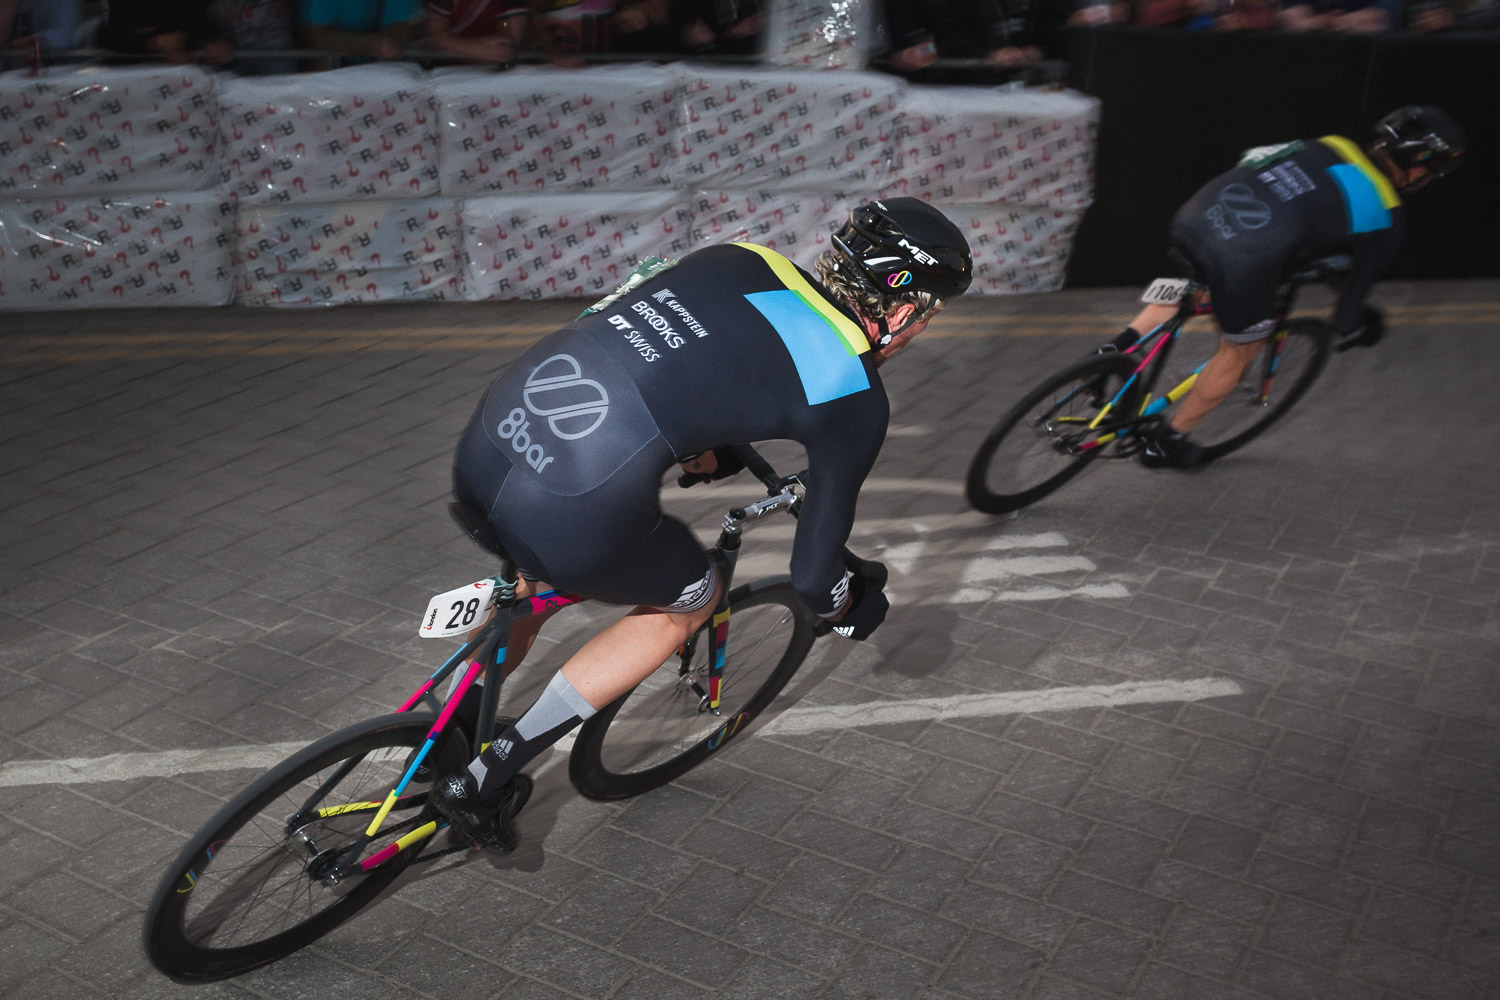 8bar team red hook crit london stefan haehnel 42 - 8bar cycling apparel now in stock!!!